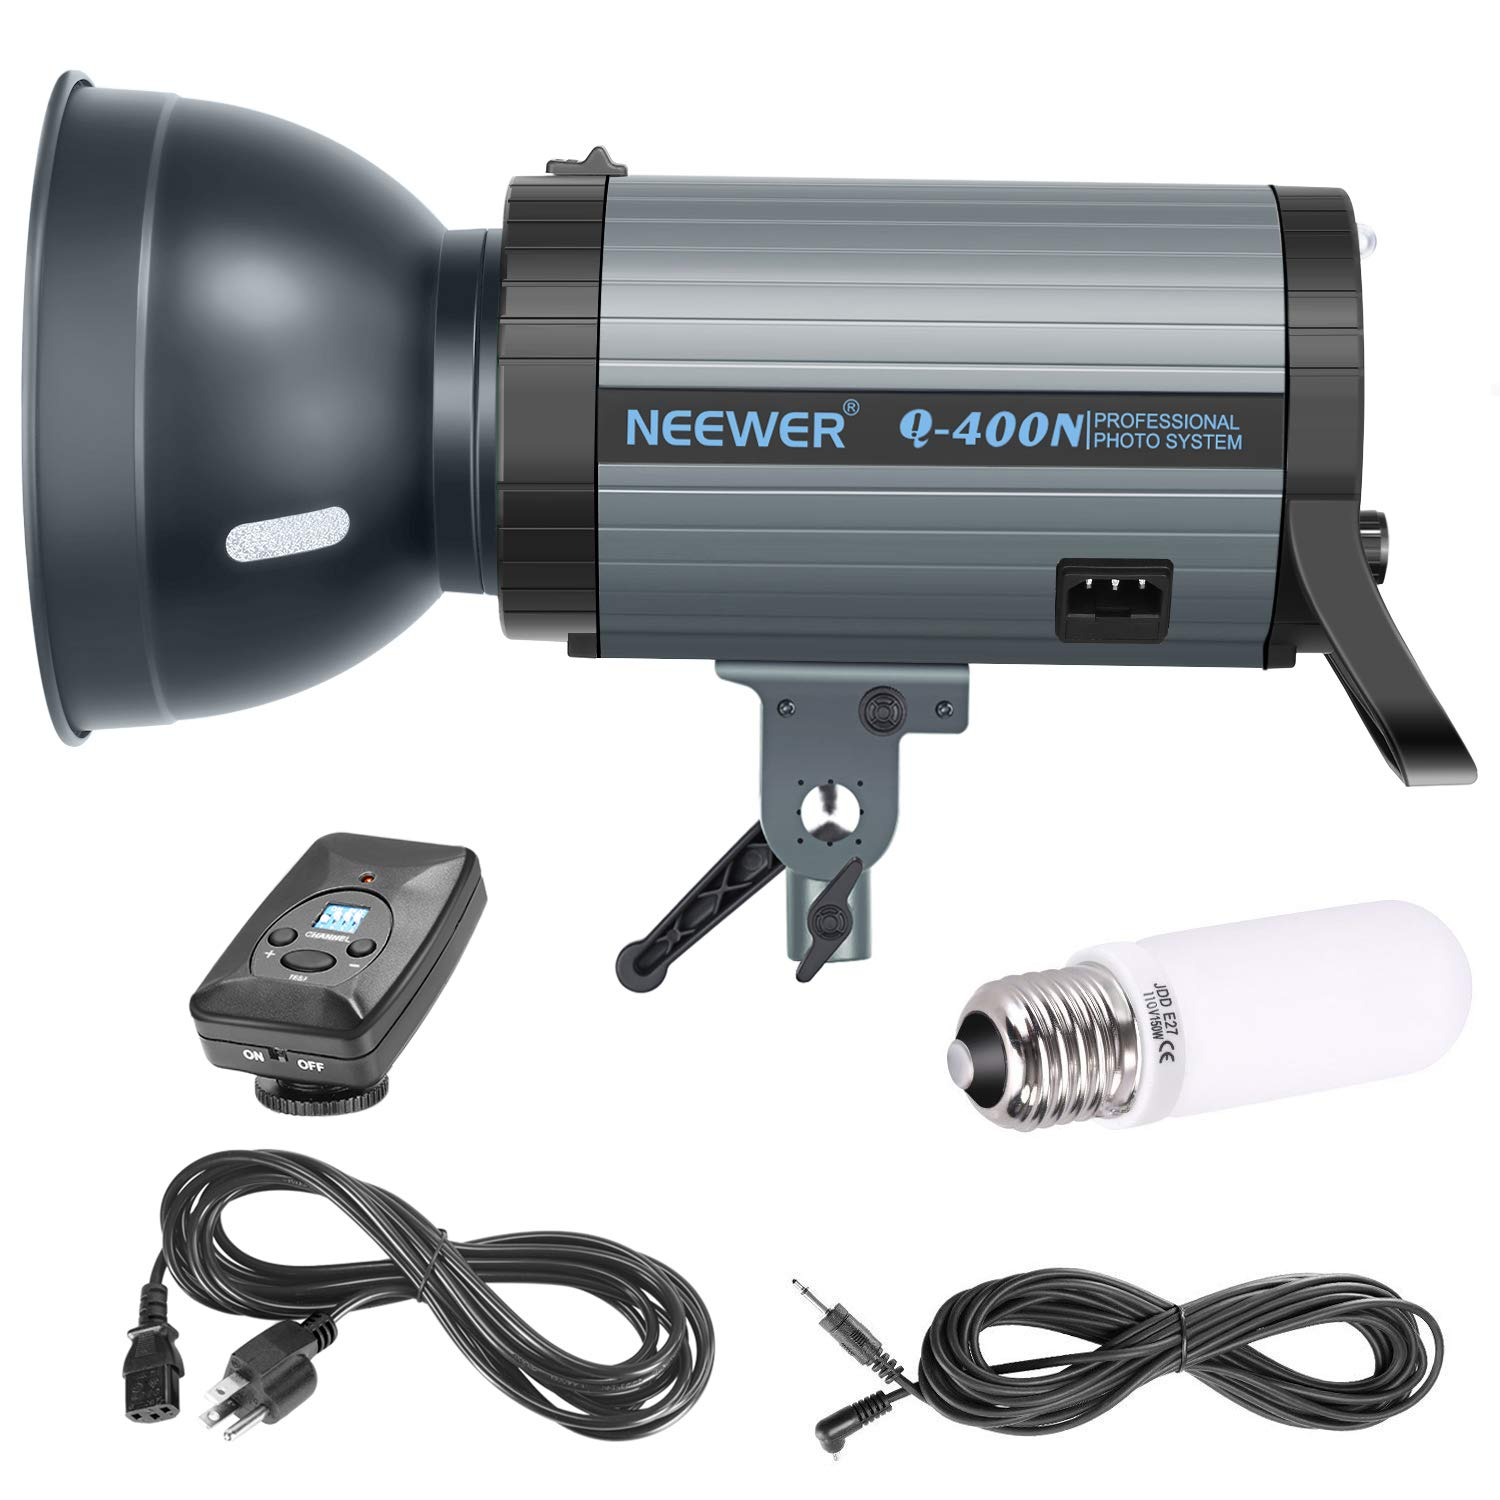 Neewer 400W GN65 Studio Flash Strobe Light Monolight with 2.4G Wireless Trigger and Modeling Lamp, Recycle in 0.01-0.5 Sec, Bowens Mount for Indoor Studio Portrait Photography(Q400N) by Neewer (Image #2)